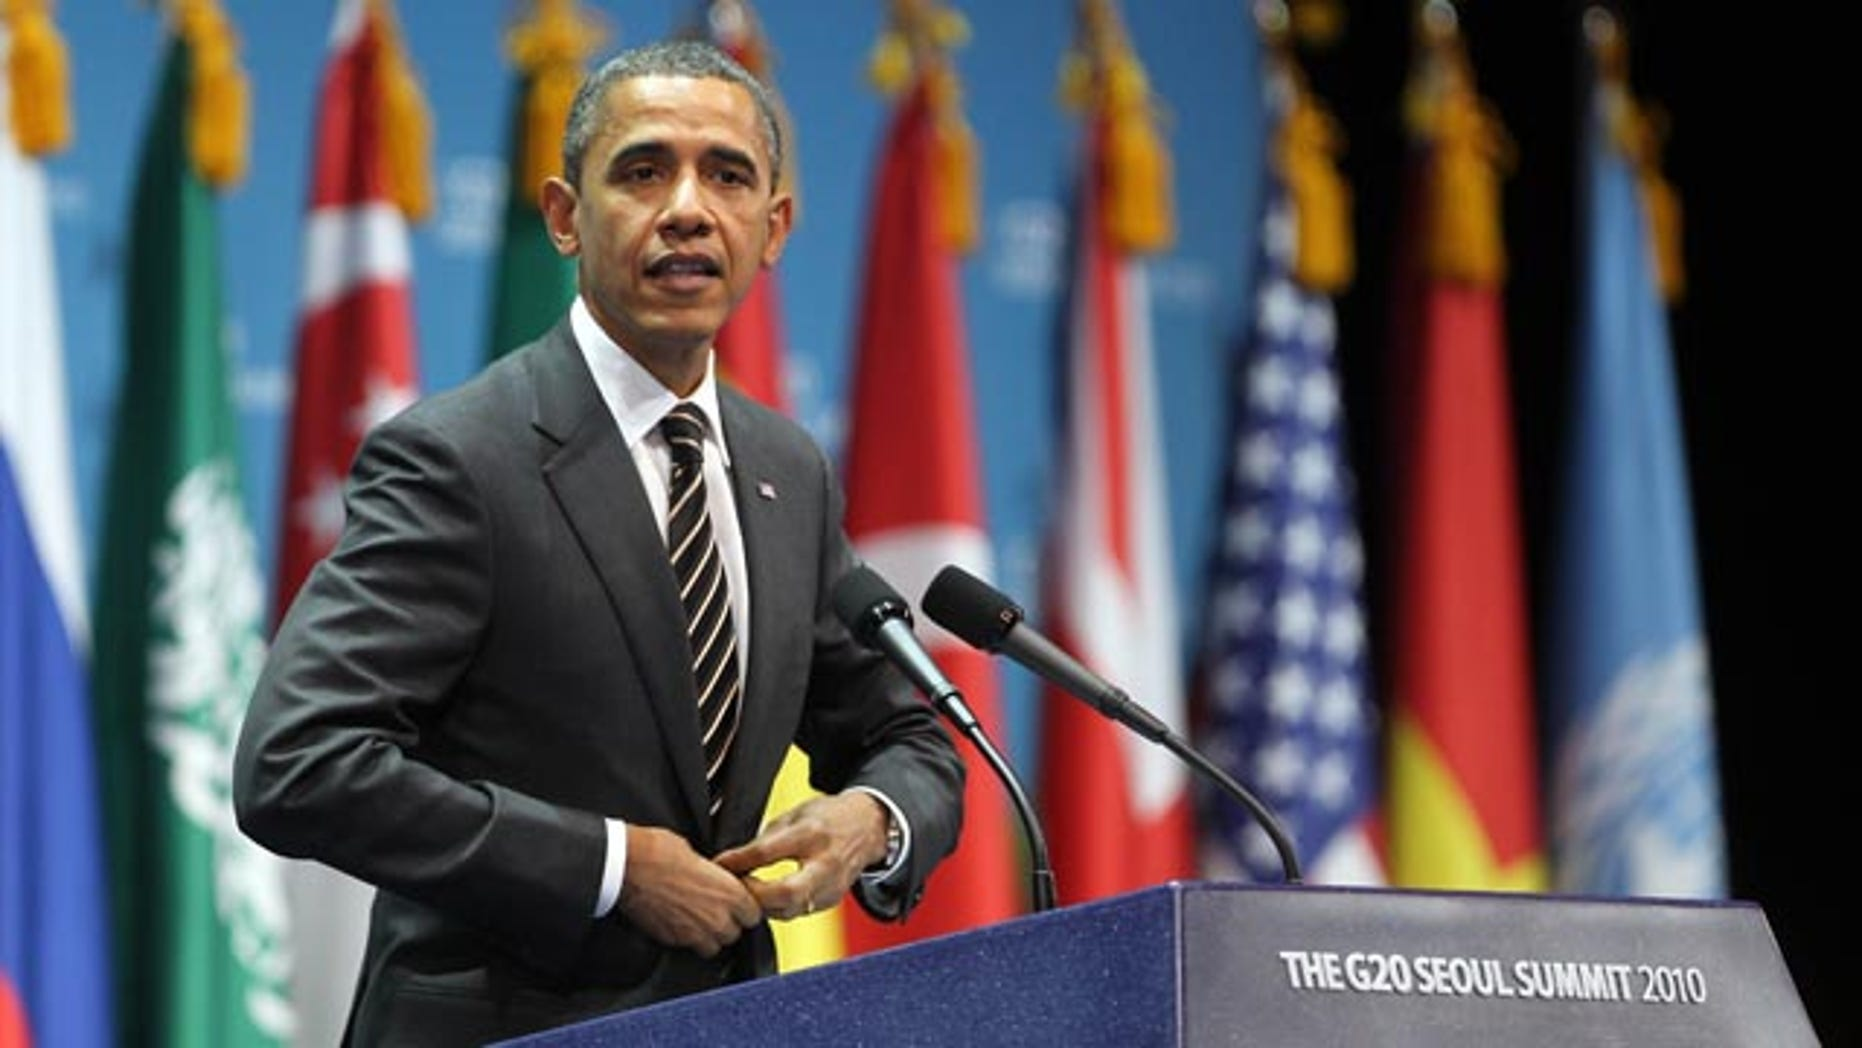 Nov. 12: Obama gestures during a closing press conference at the G20 Summit in Seoul, South Korea. Obama said the decision by the Federal Reserve to pump $600 billion into the U.S. economy was designed to give a boost to a slow recovery and address fears of deflation.